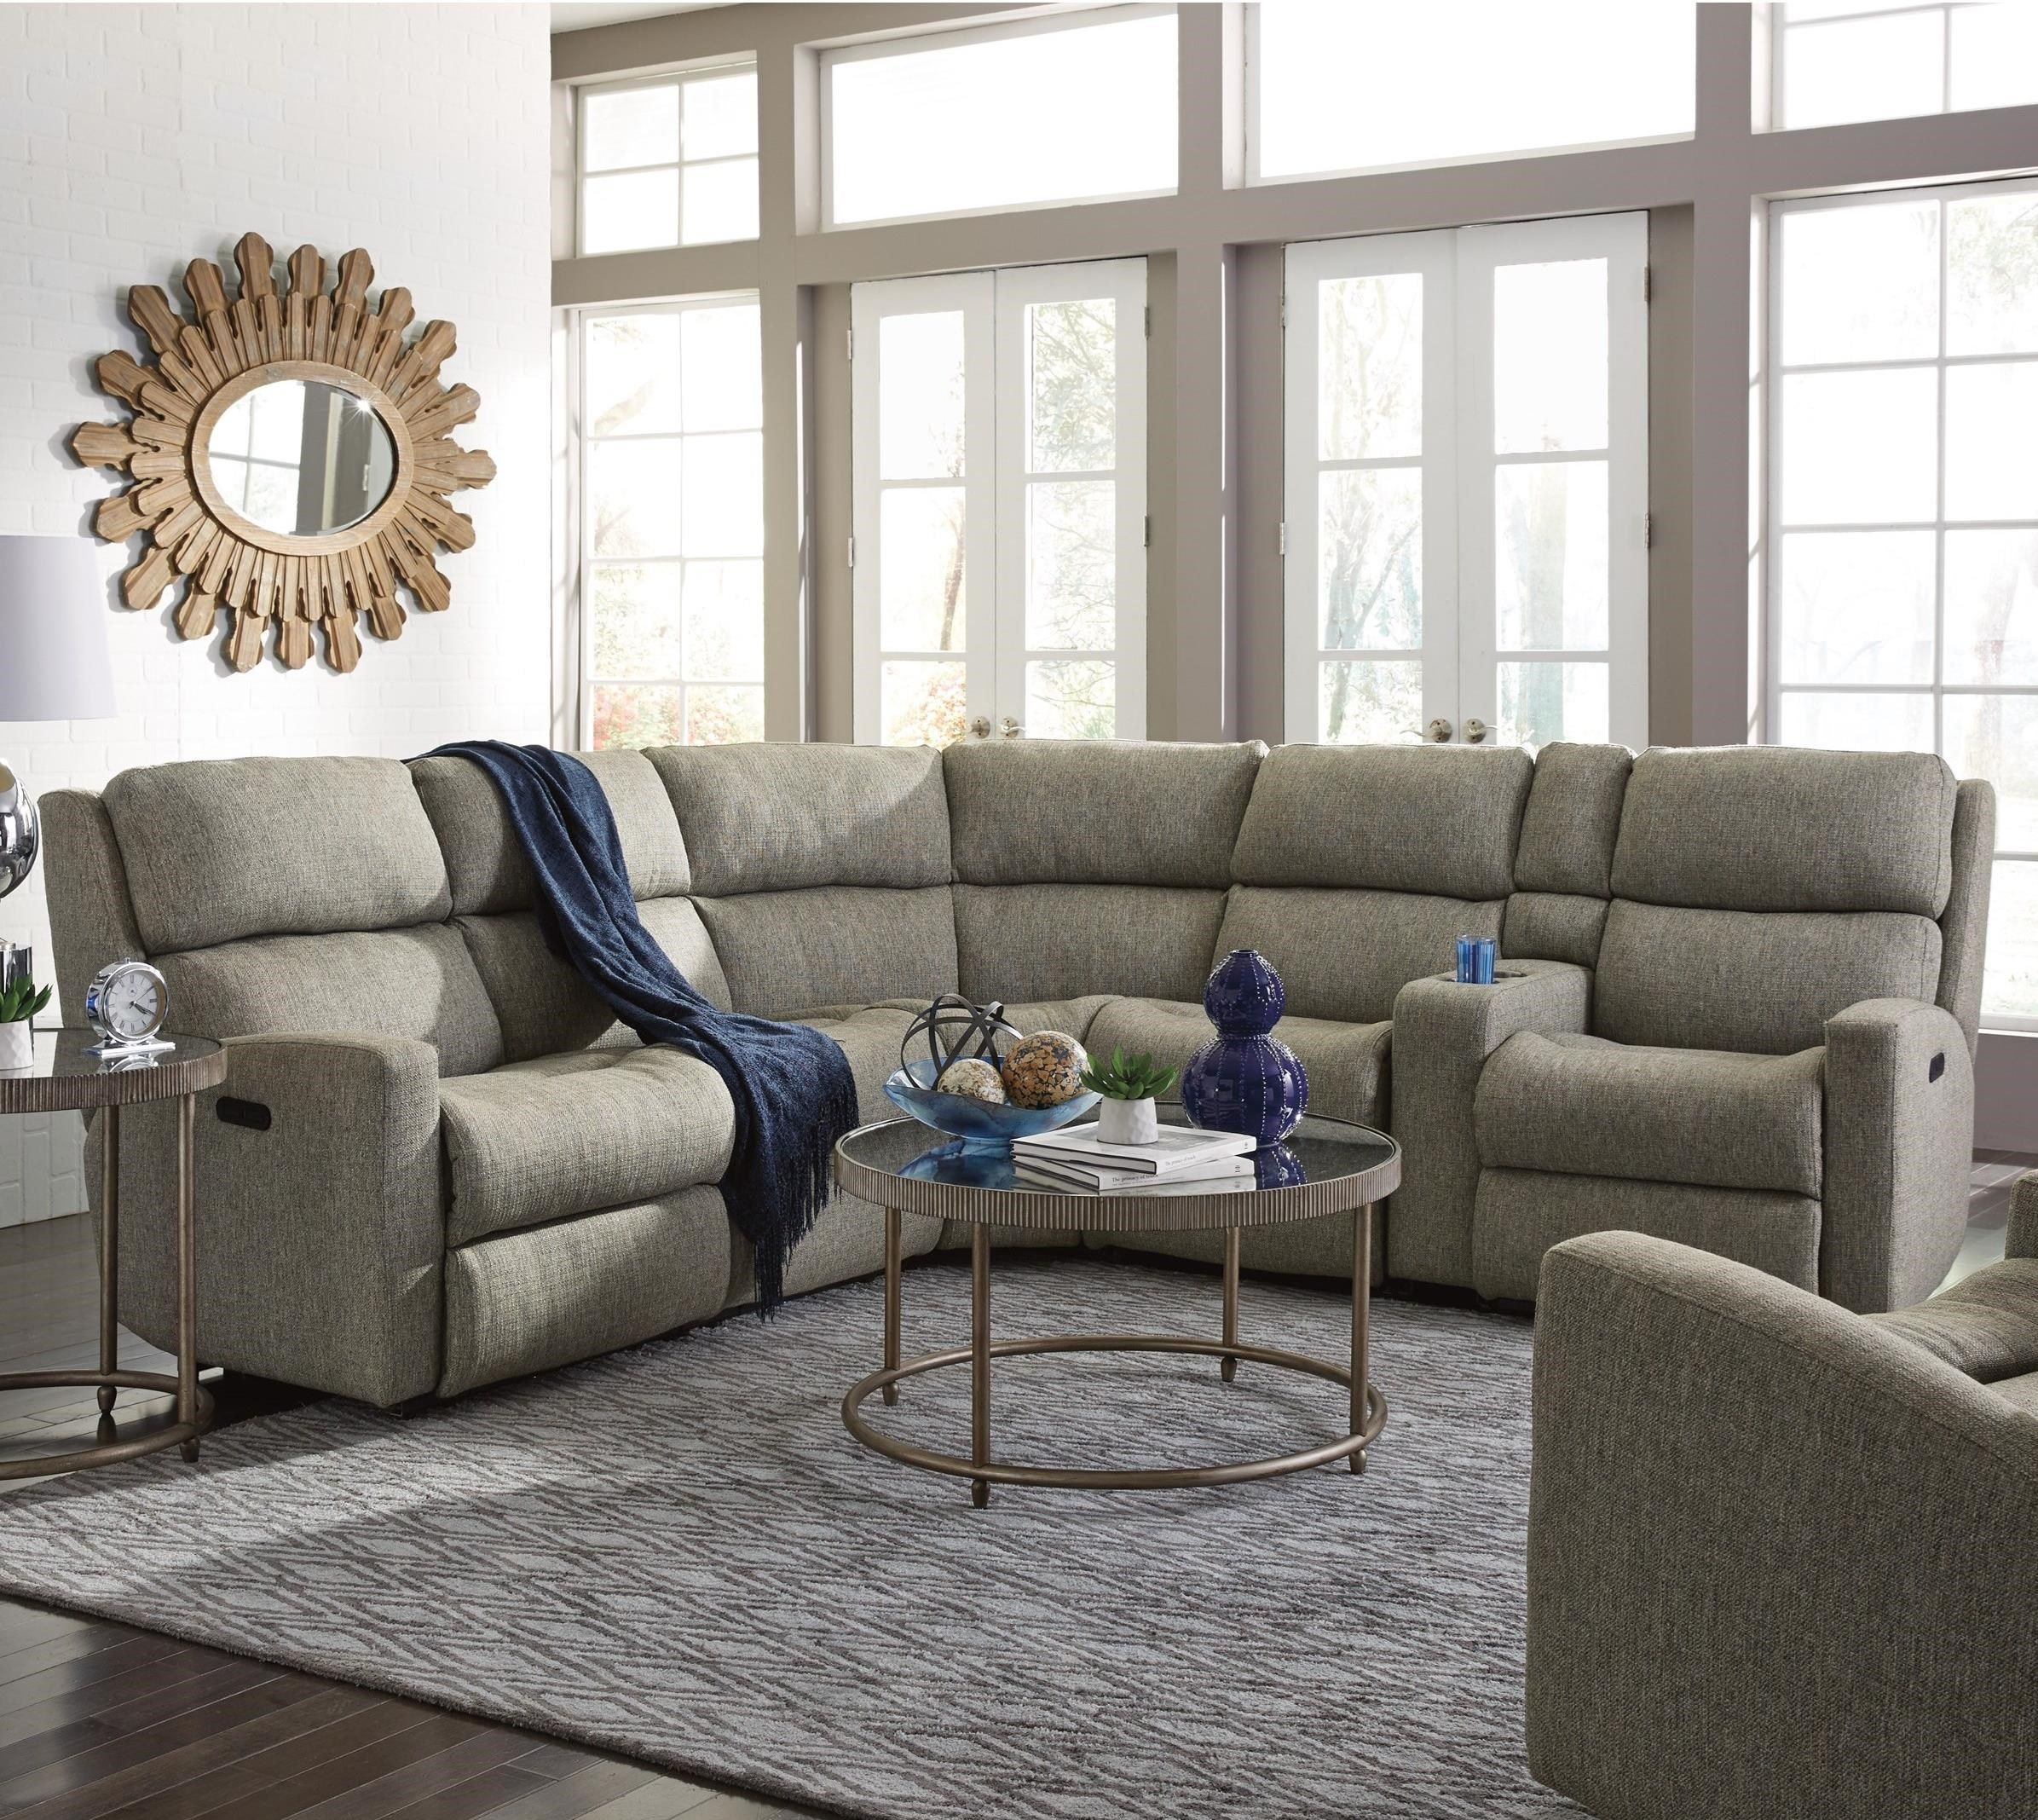 Pleasant Catalina 6 Piece Manual Reclining Sectional Sofa With Laf Pdpeps Interior Chair Design Pdpepsorg